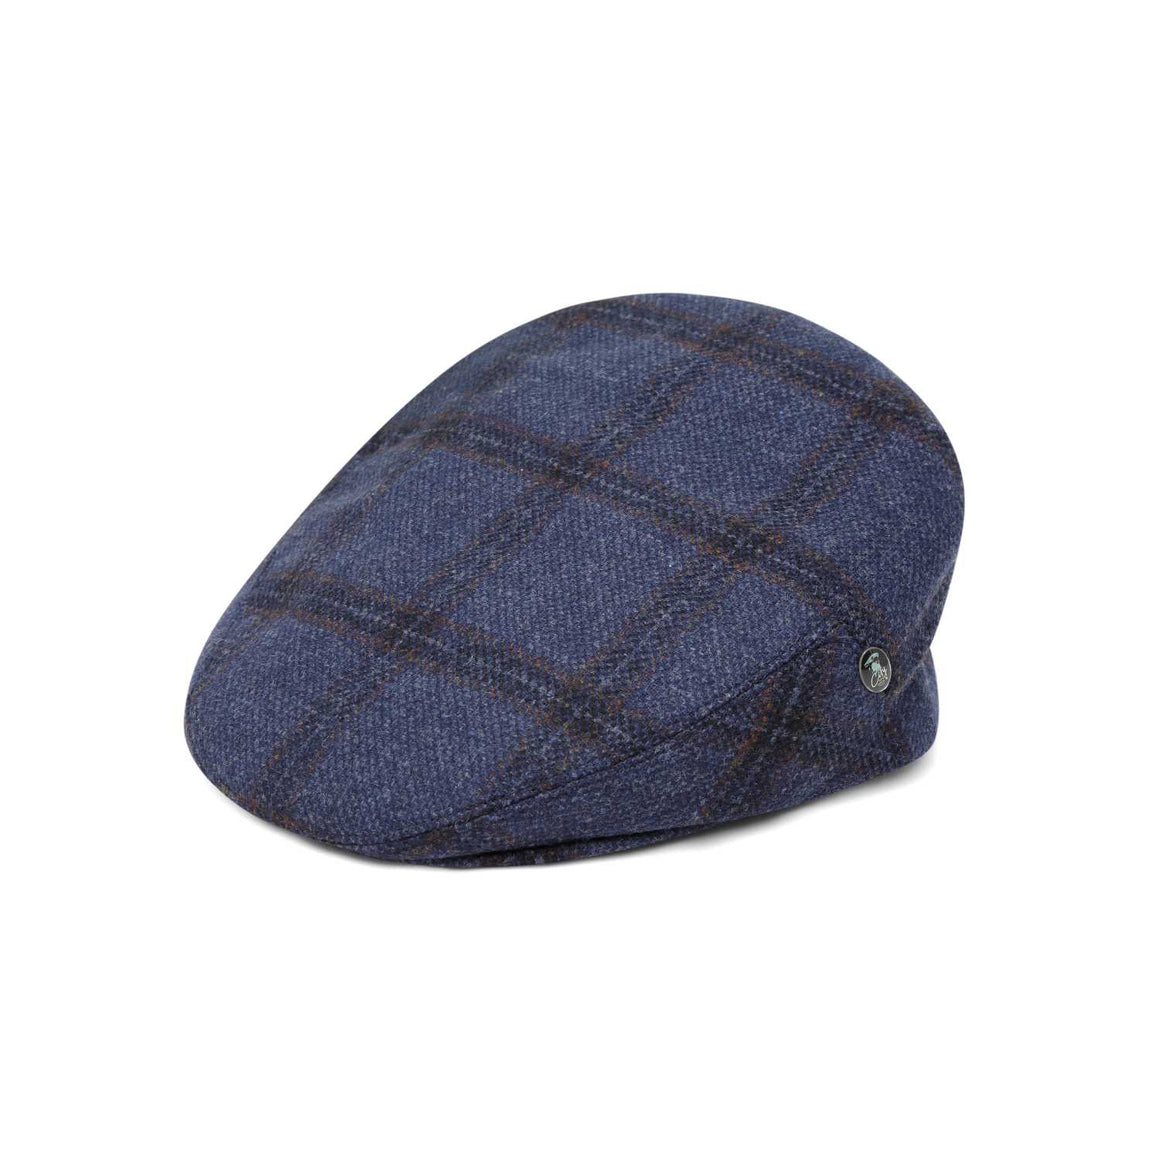 The Cashmere Choice - City Sport - Cool Comfort - Wool Flat Cap - Blue Windowpane 3401